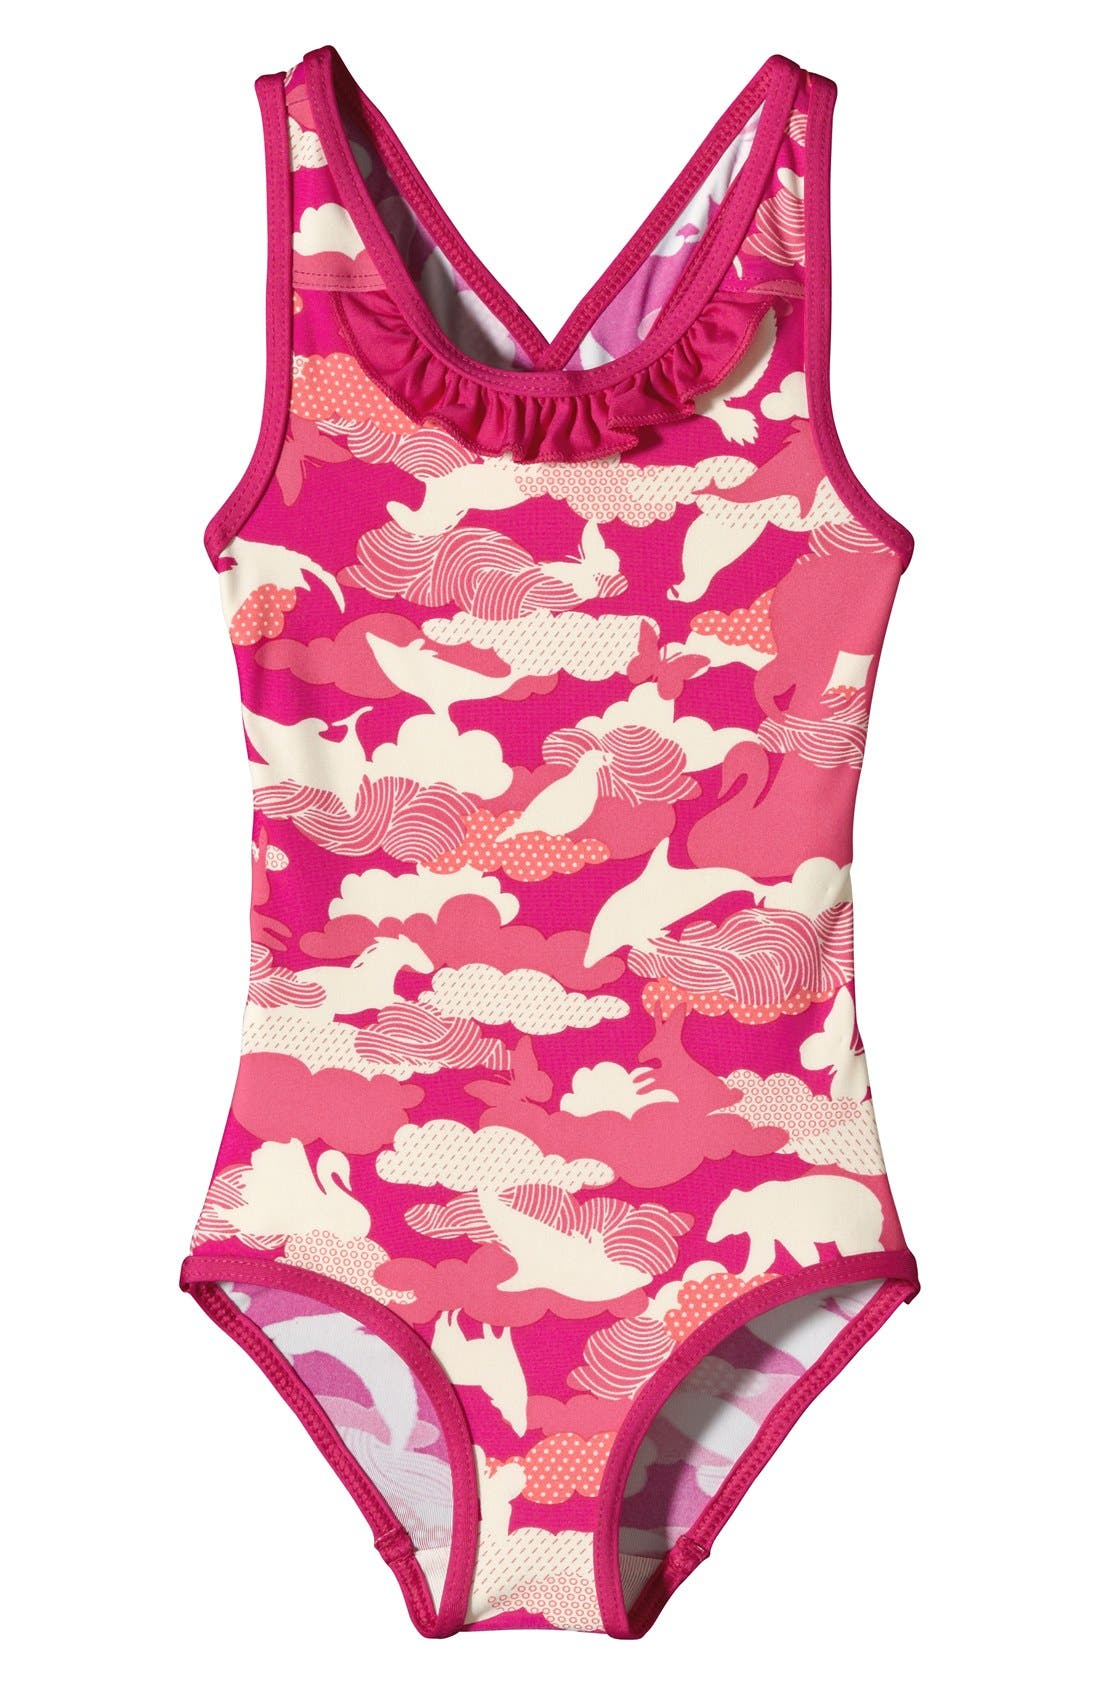 Alternate Image 1 Selected - Patagonia 'QT' One-Piece Swimsuit (Toddler Girls)